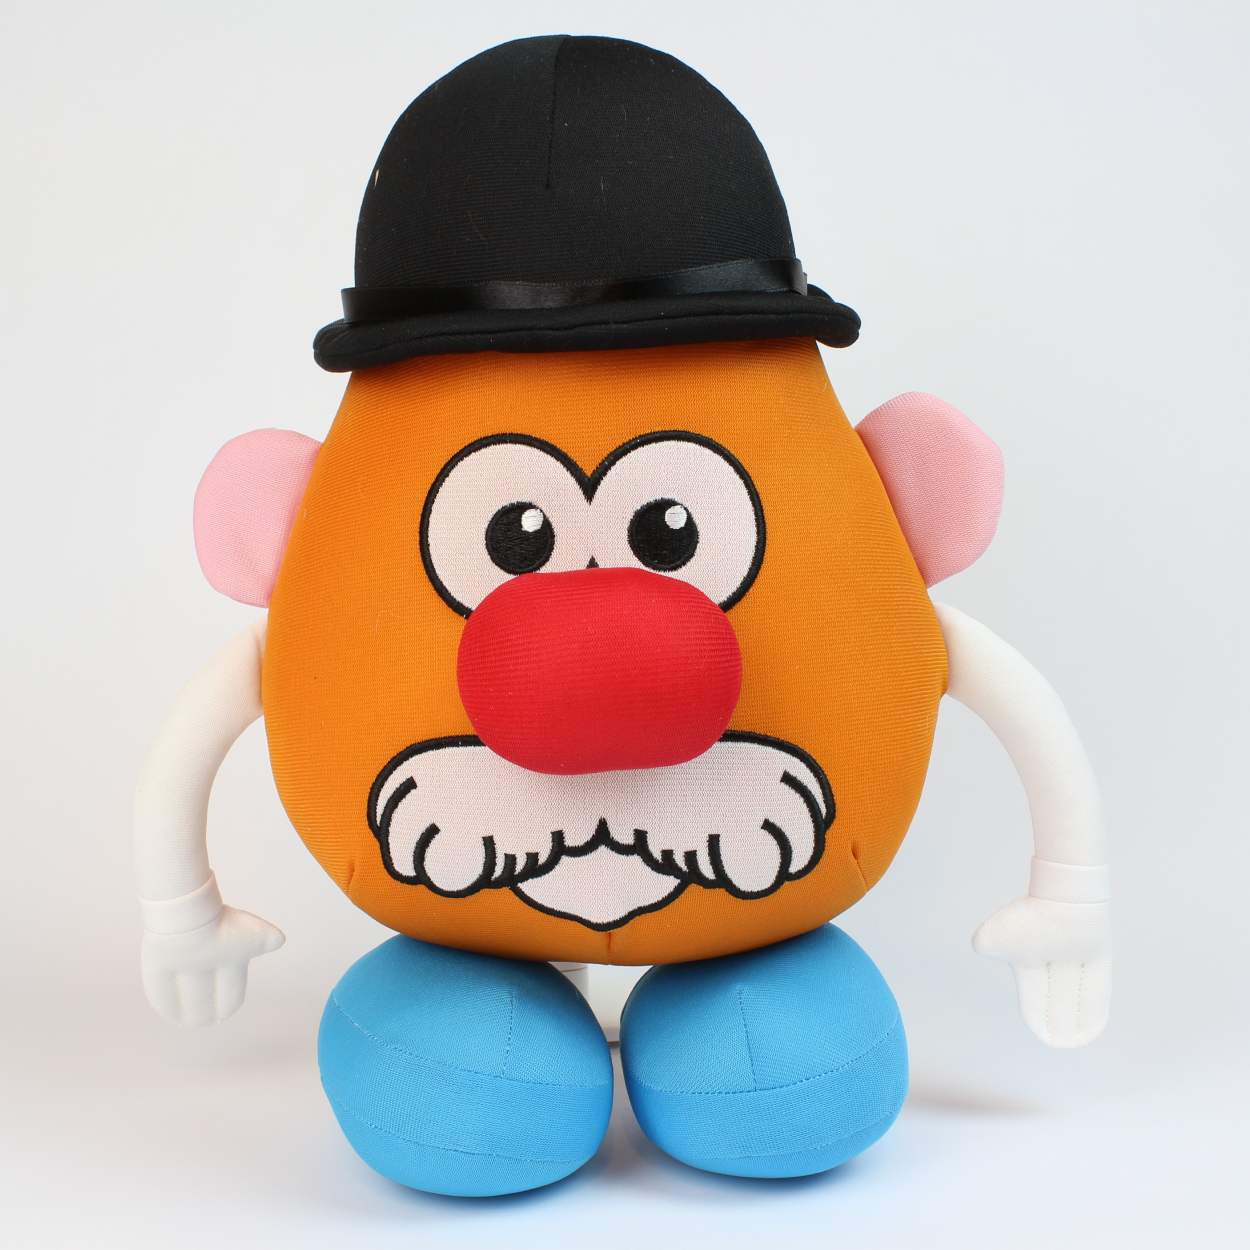 Mr and Mrs Potato Head-03.png